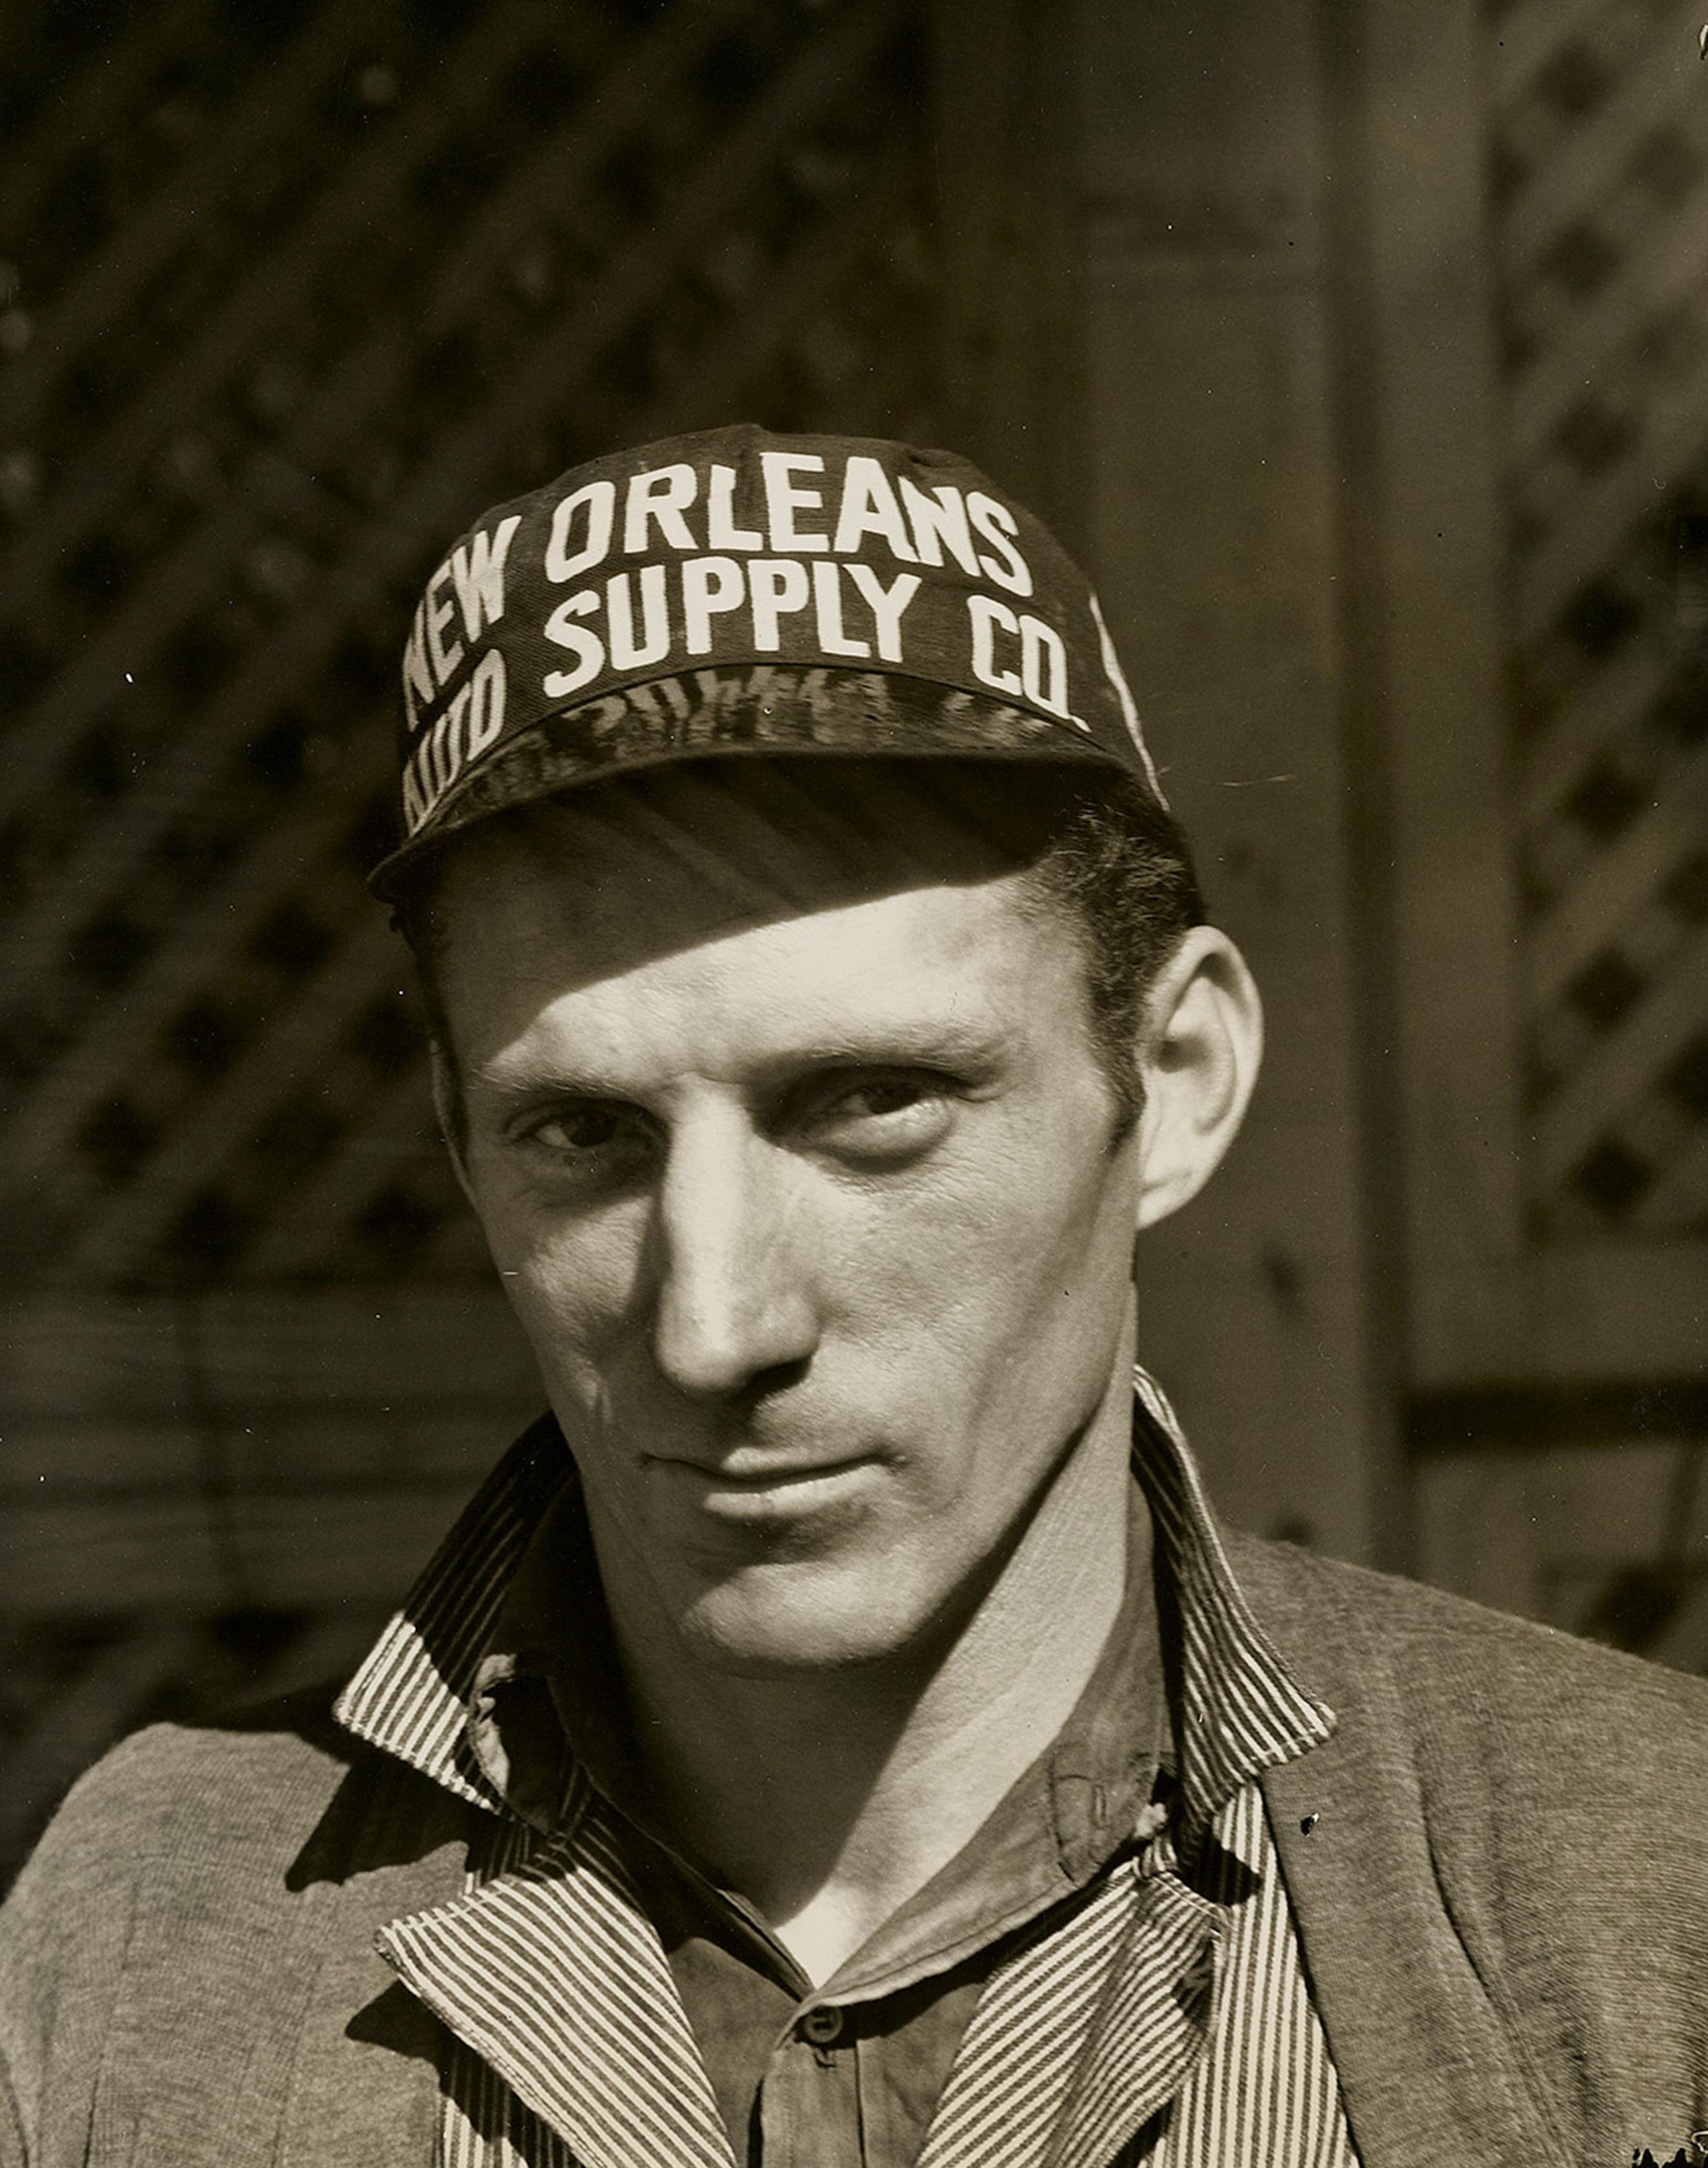 Black and White Photo of Man Wearing New Orleans Supply Hat